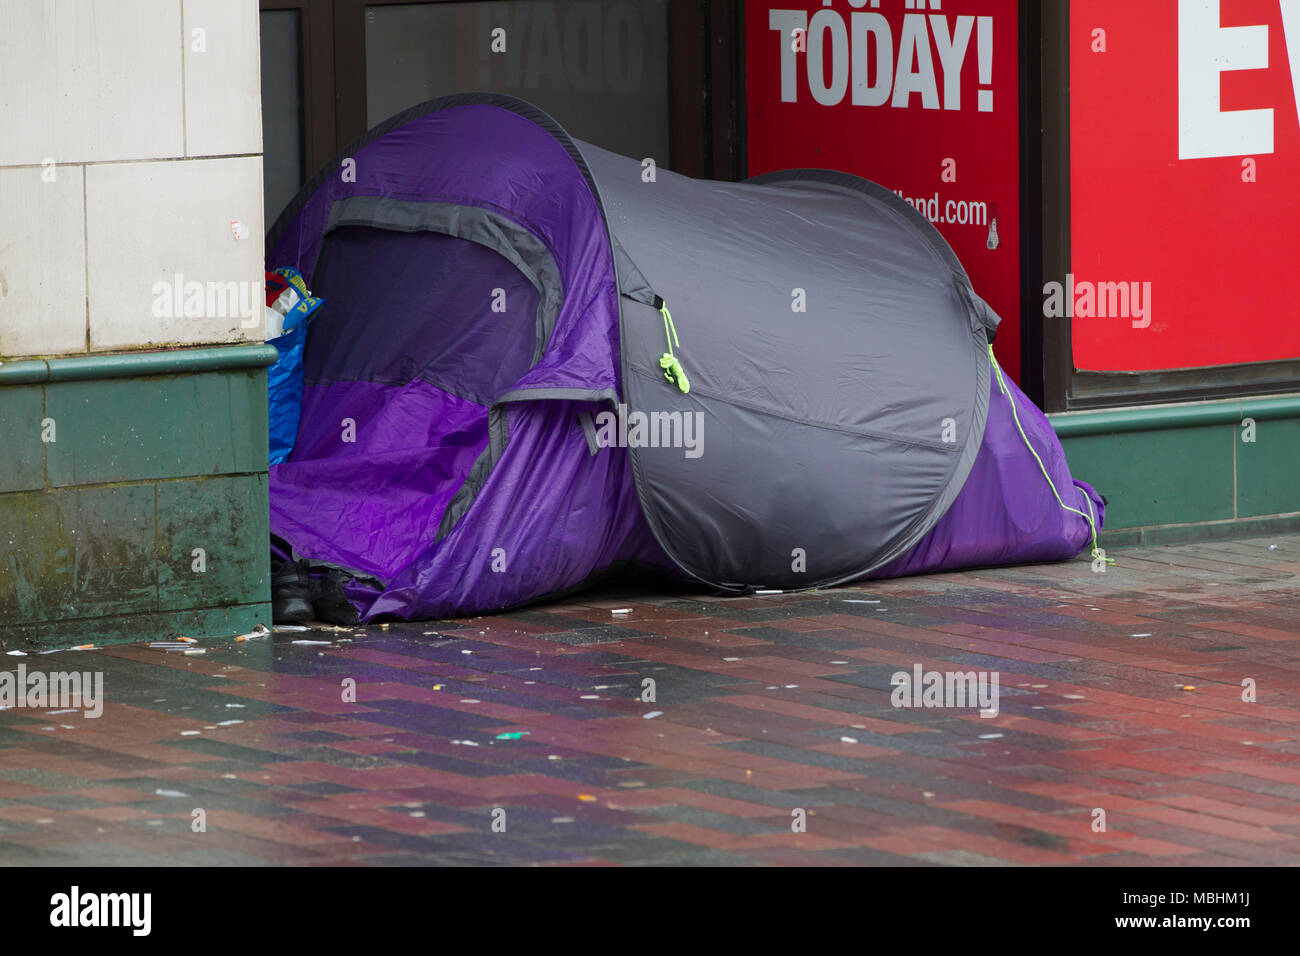 Northampton. 11th Apr, 2018. UK Weather: Another dull miserable day for the homeless having to live in a tent in Abington Street in the town centre. Credit: Keith J Smith./Alamy Live News - Stock Image